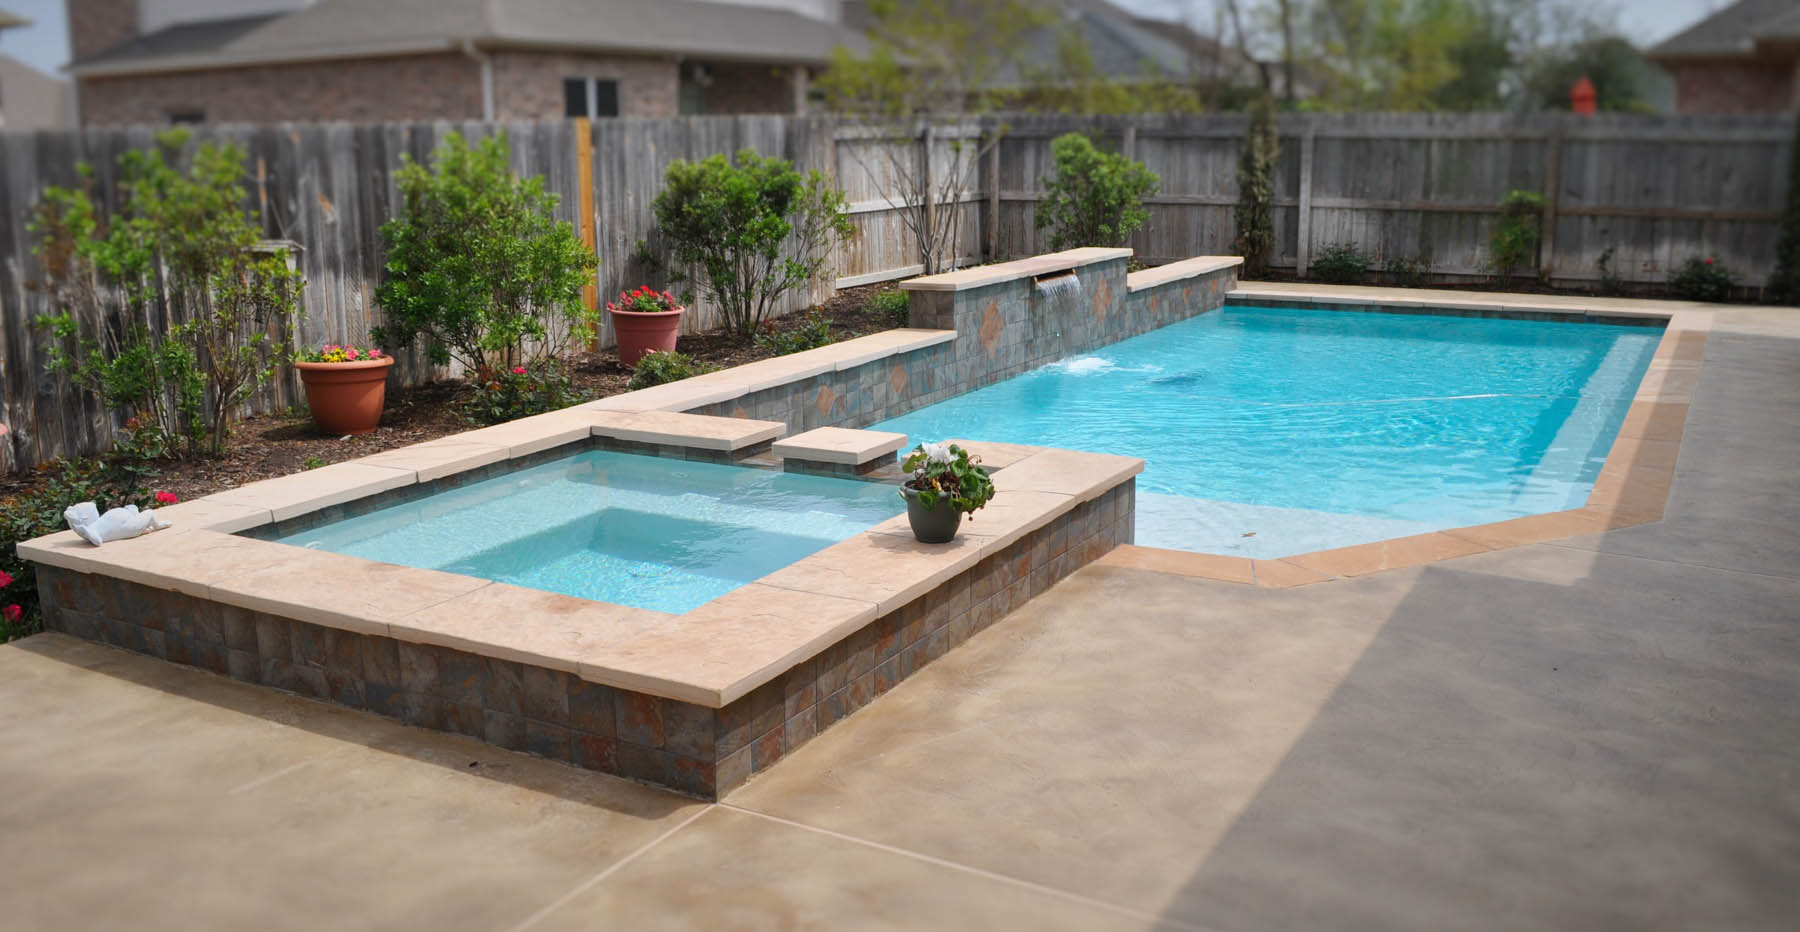 College station pool design bryan pool builder brazos for Pool design options